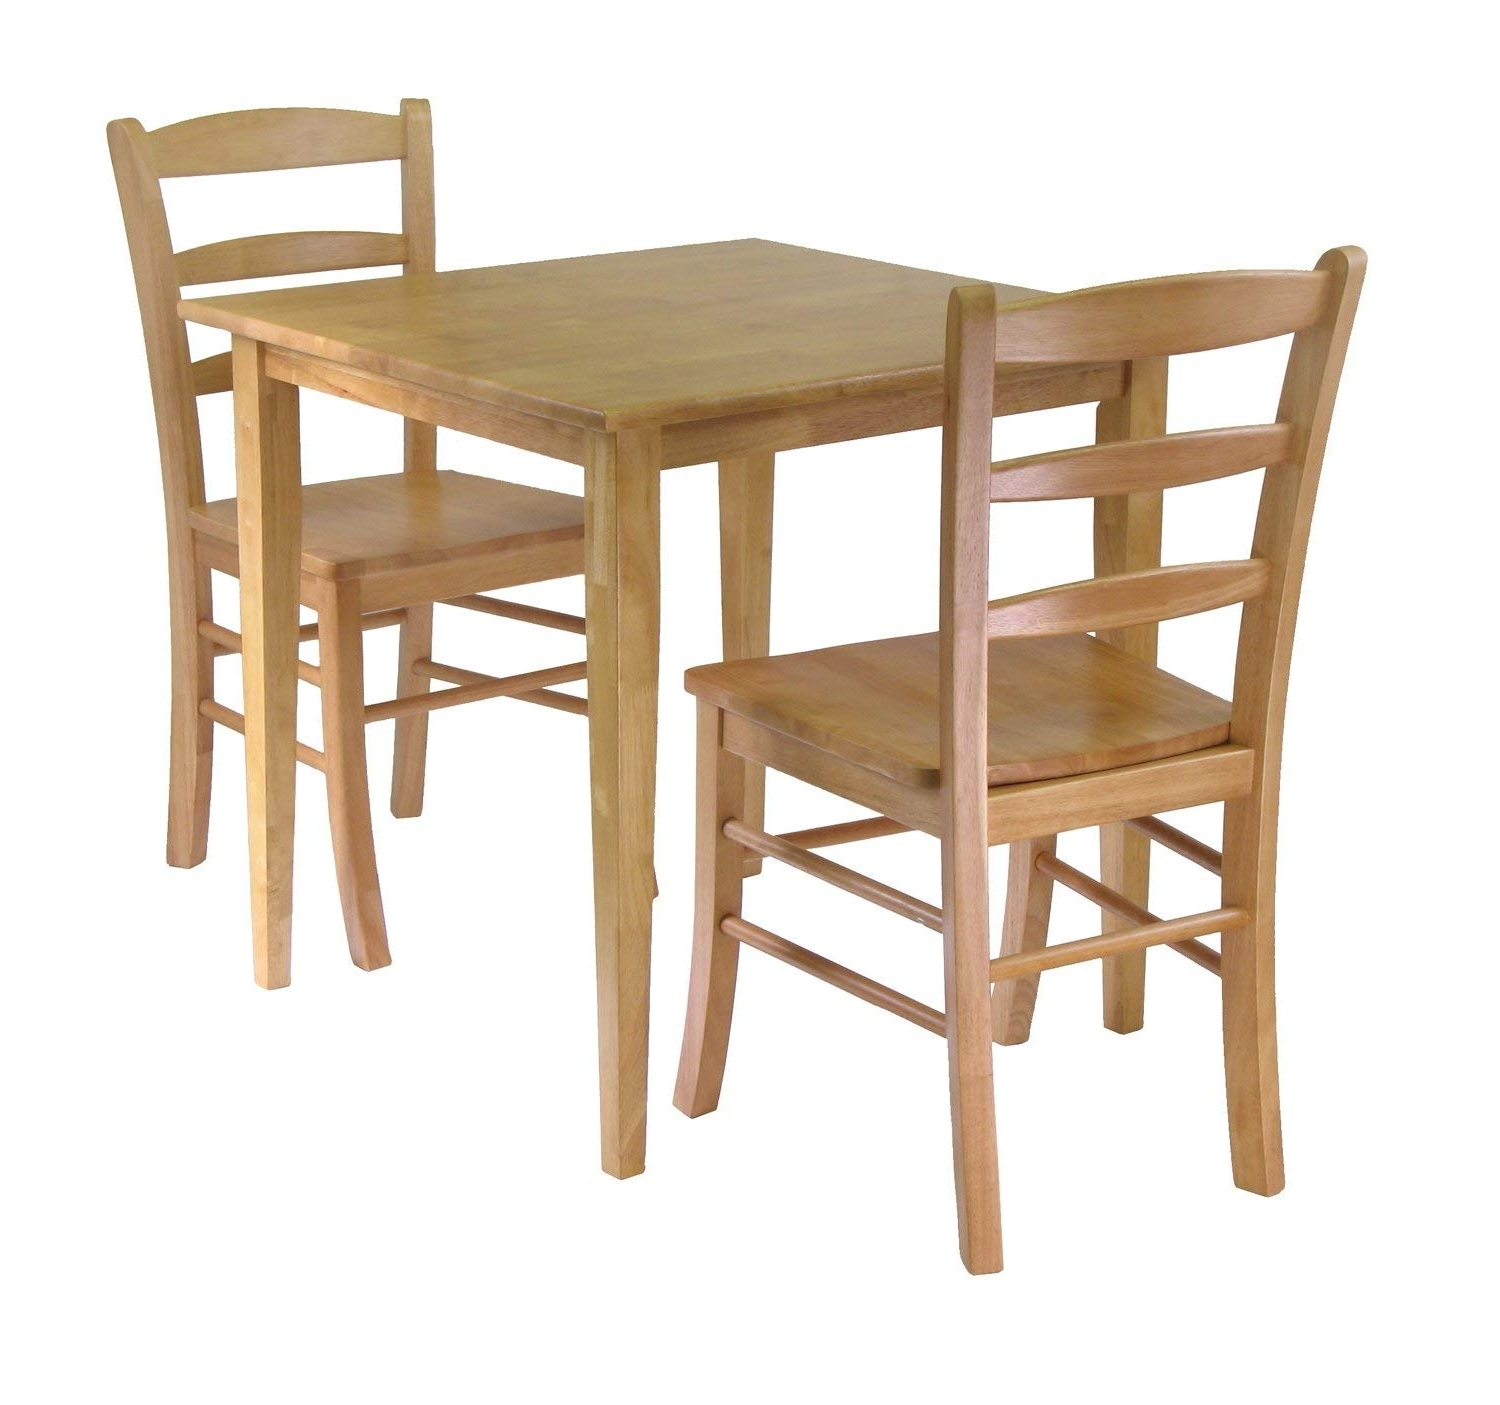 2018 Amazon - Winsome Groveland 3-Piece Wood Dining Set, Light Oak throughout Small Extendable Dining Table Sets